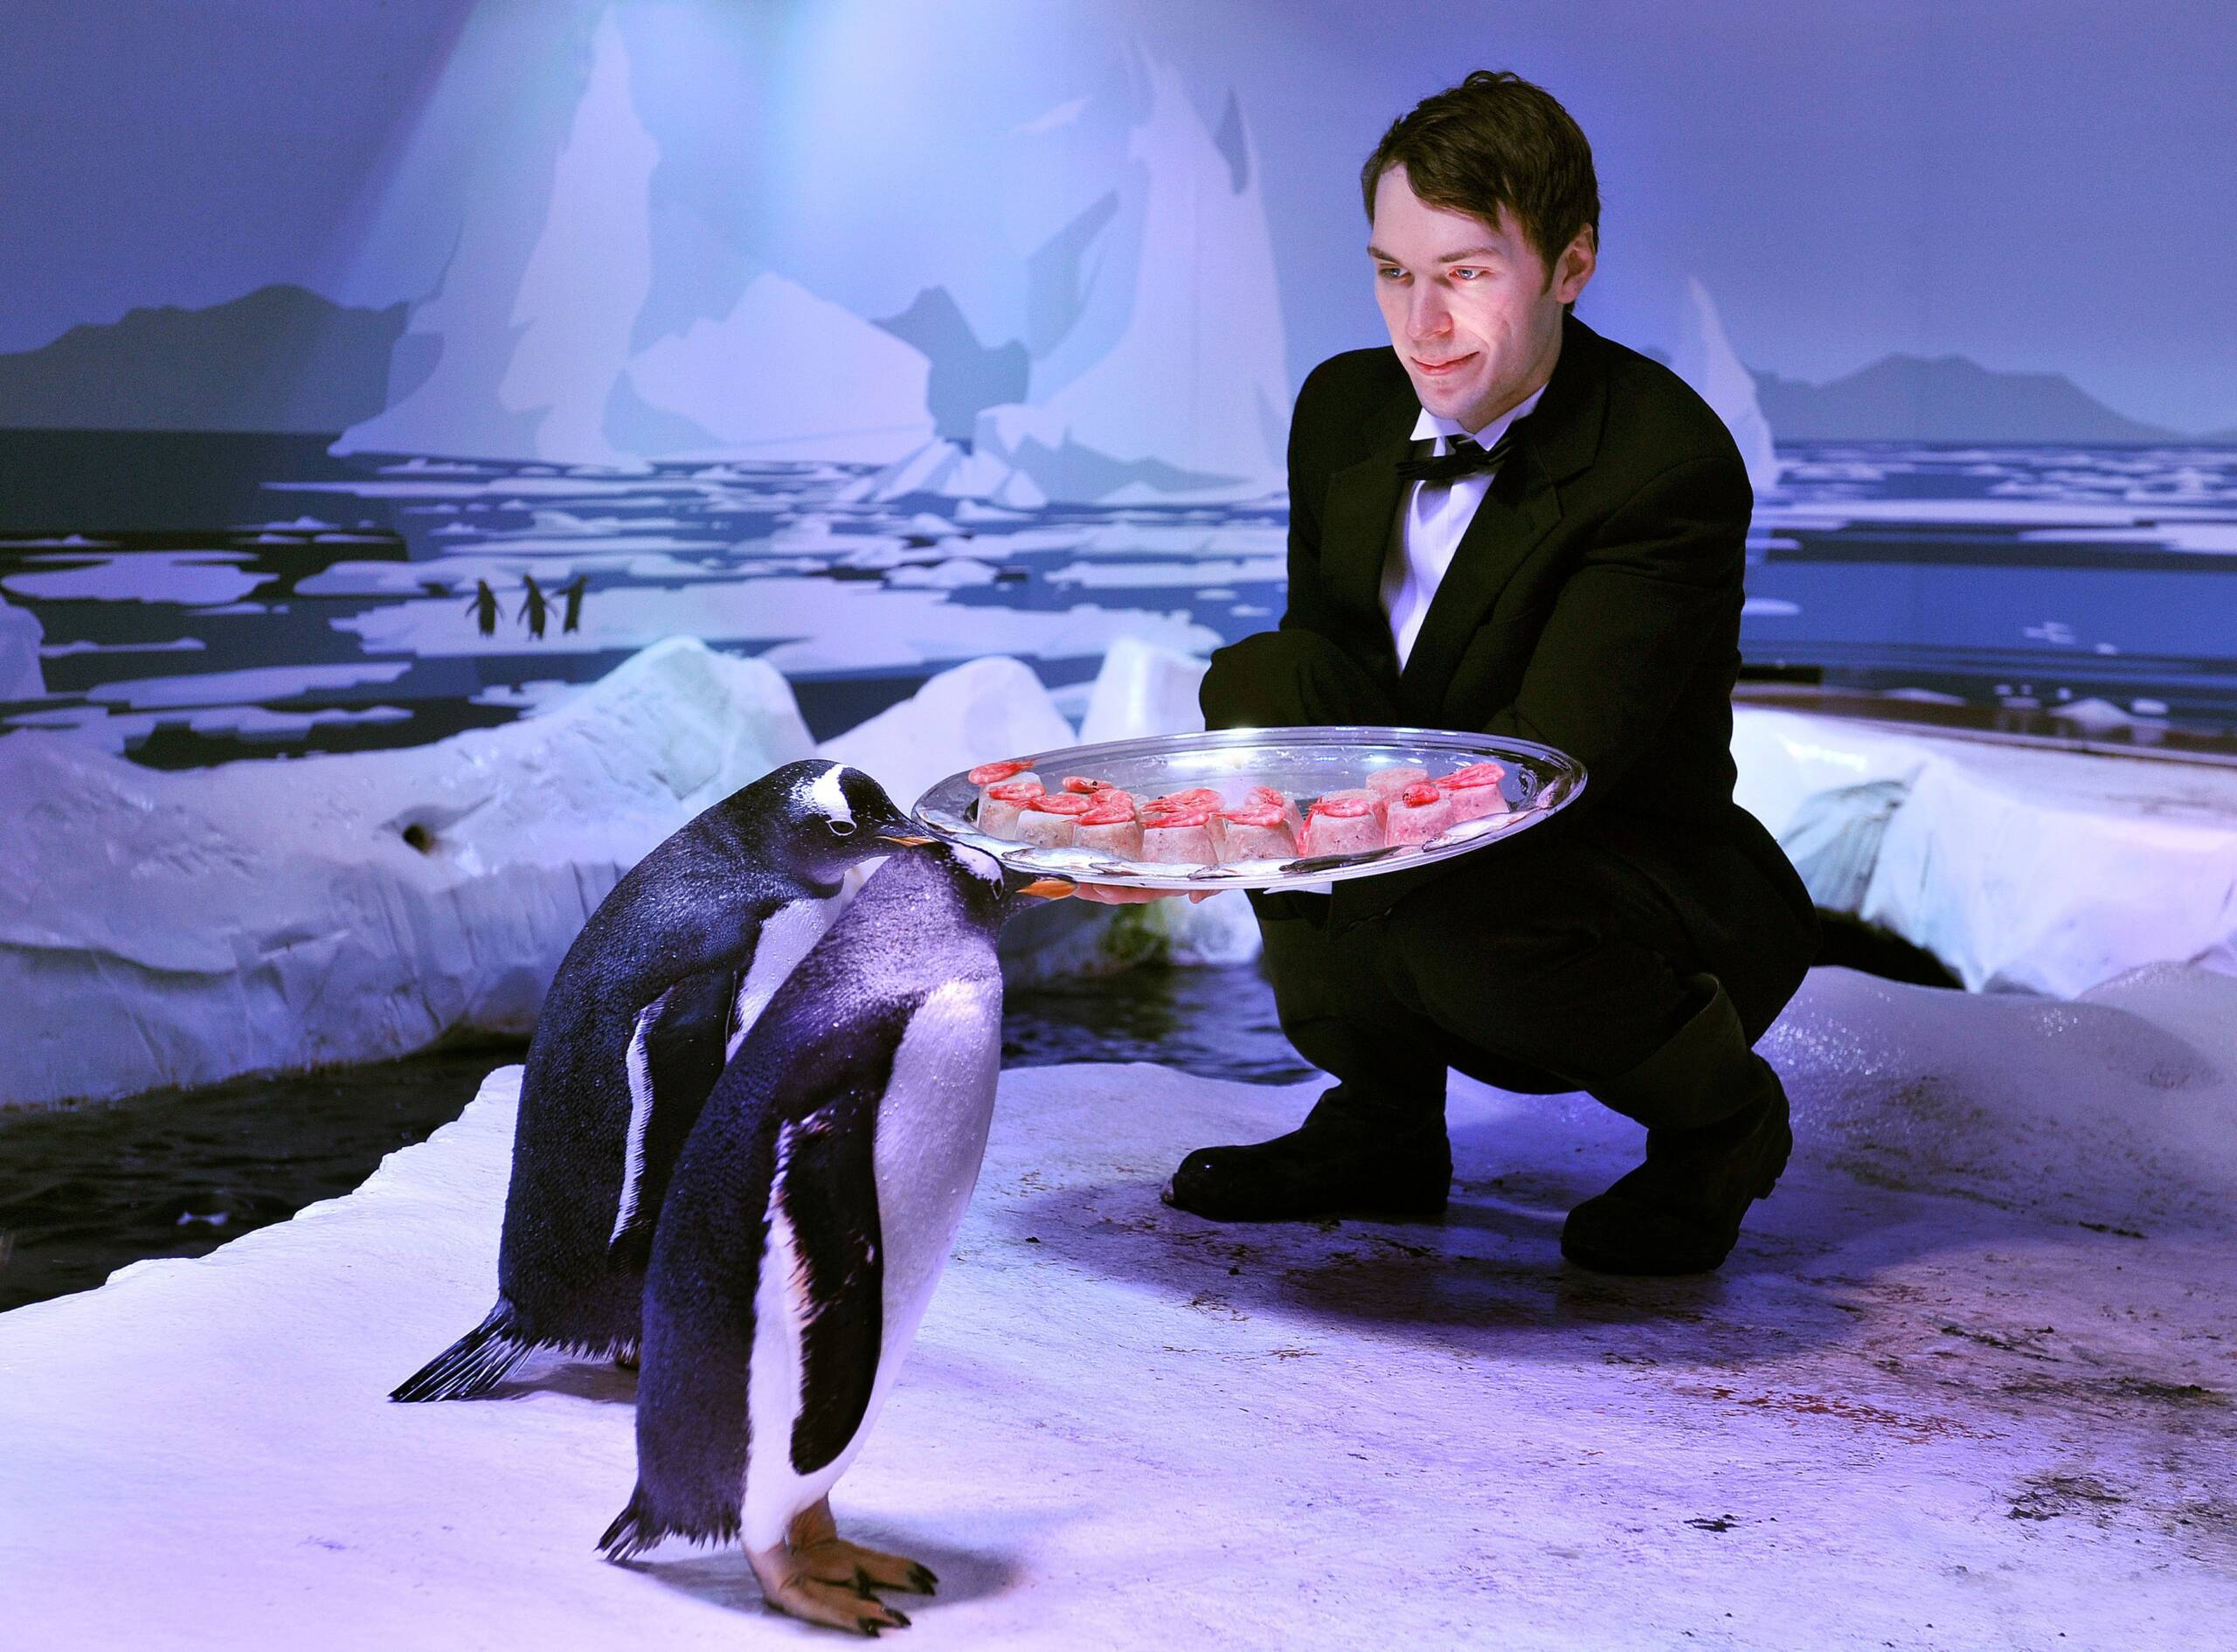 The Gentoo Penguins at the London Aquarium are presented with a Fishmas Dinner by waiter Tom Pockert, as a special festive treat for the popular guests from the Antarctic region who reside on the south bank close to Westminster in central London. (Photo by John Stillwell/PA Images via Getty Images)